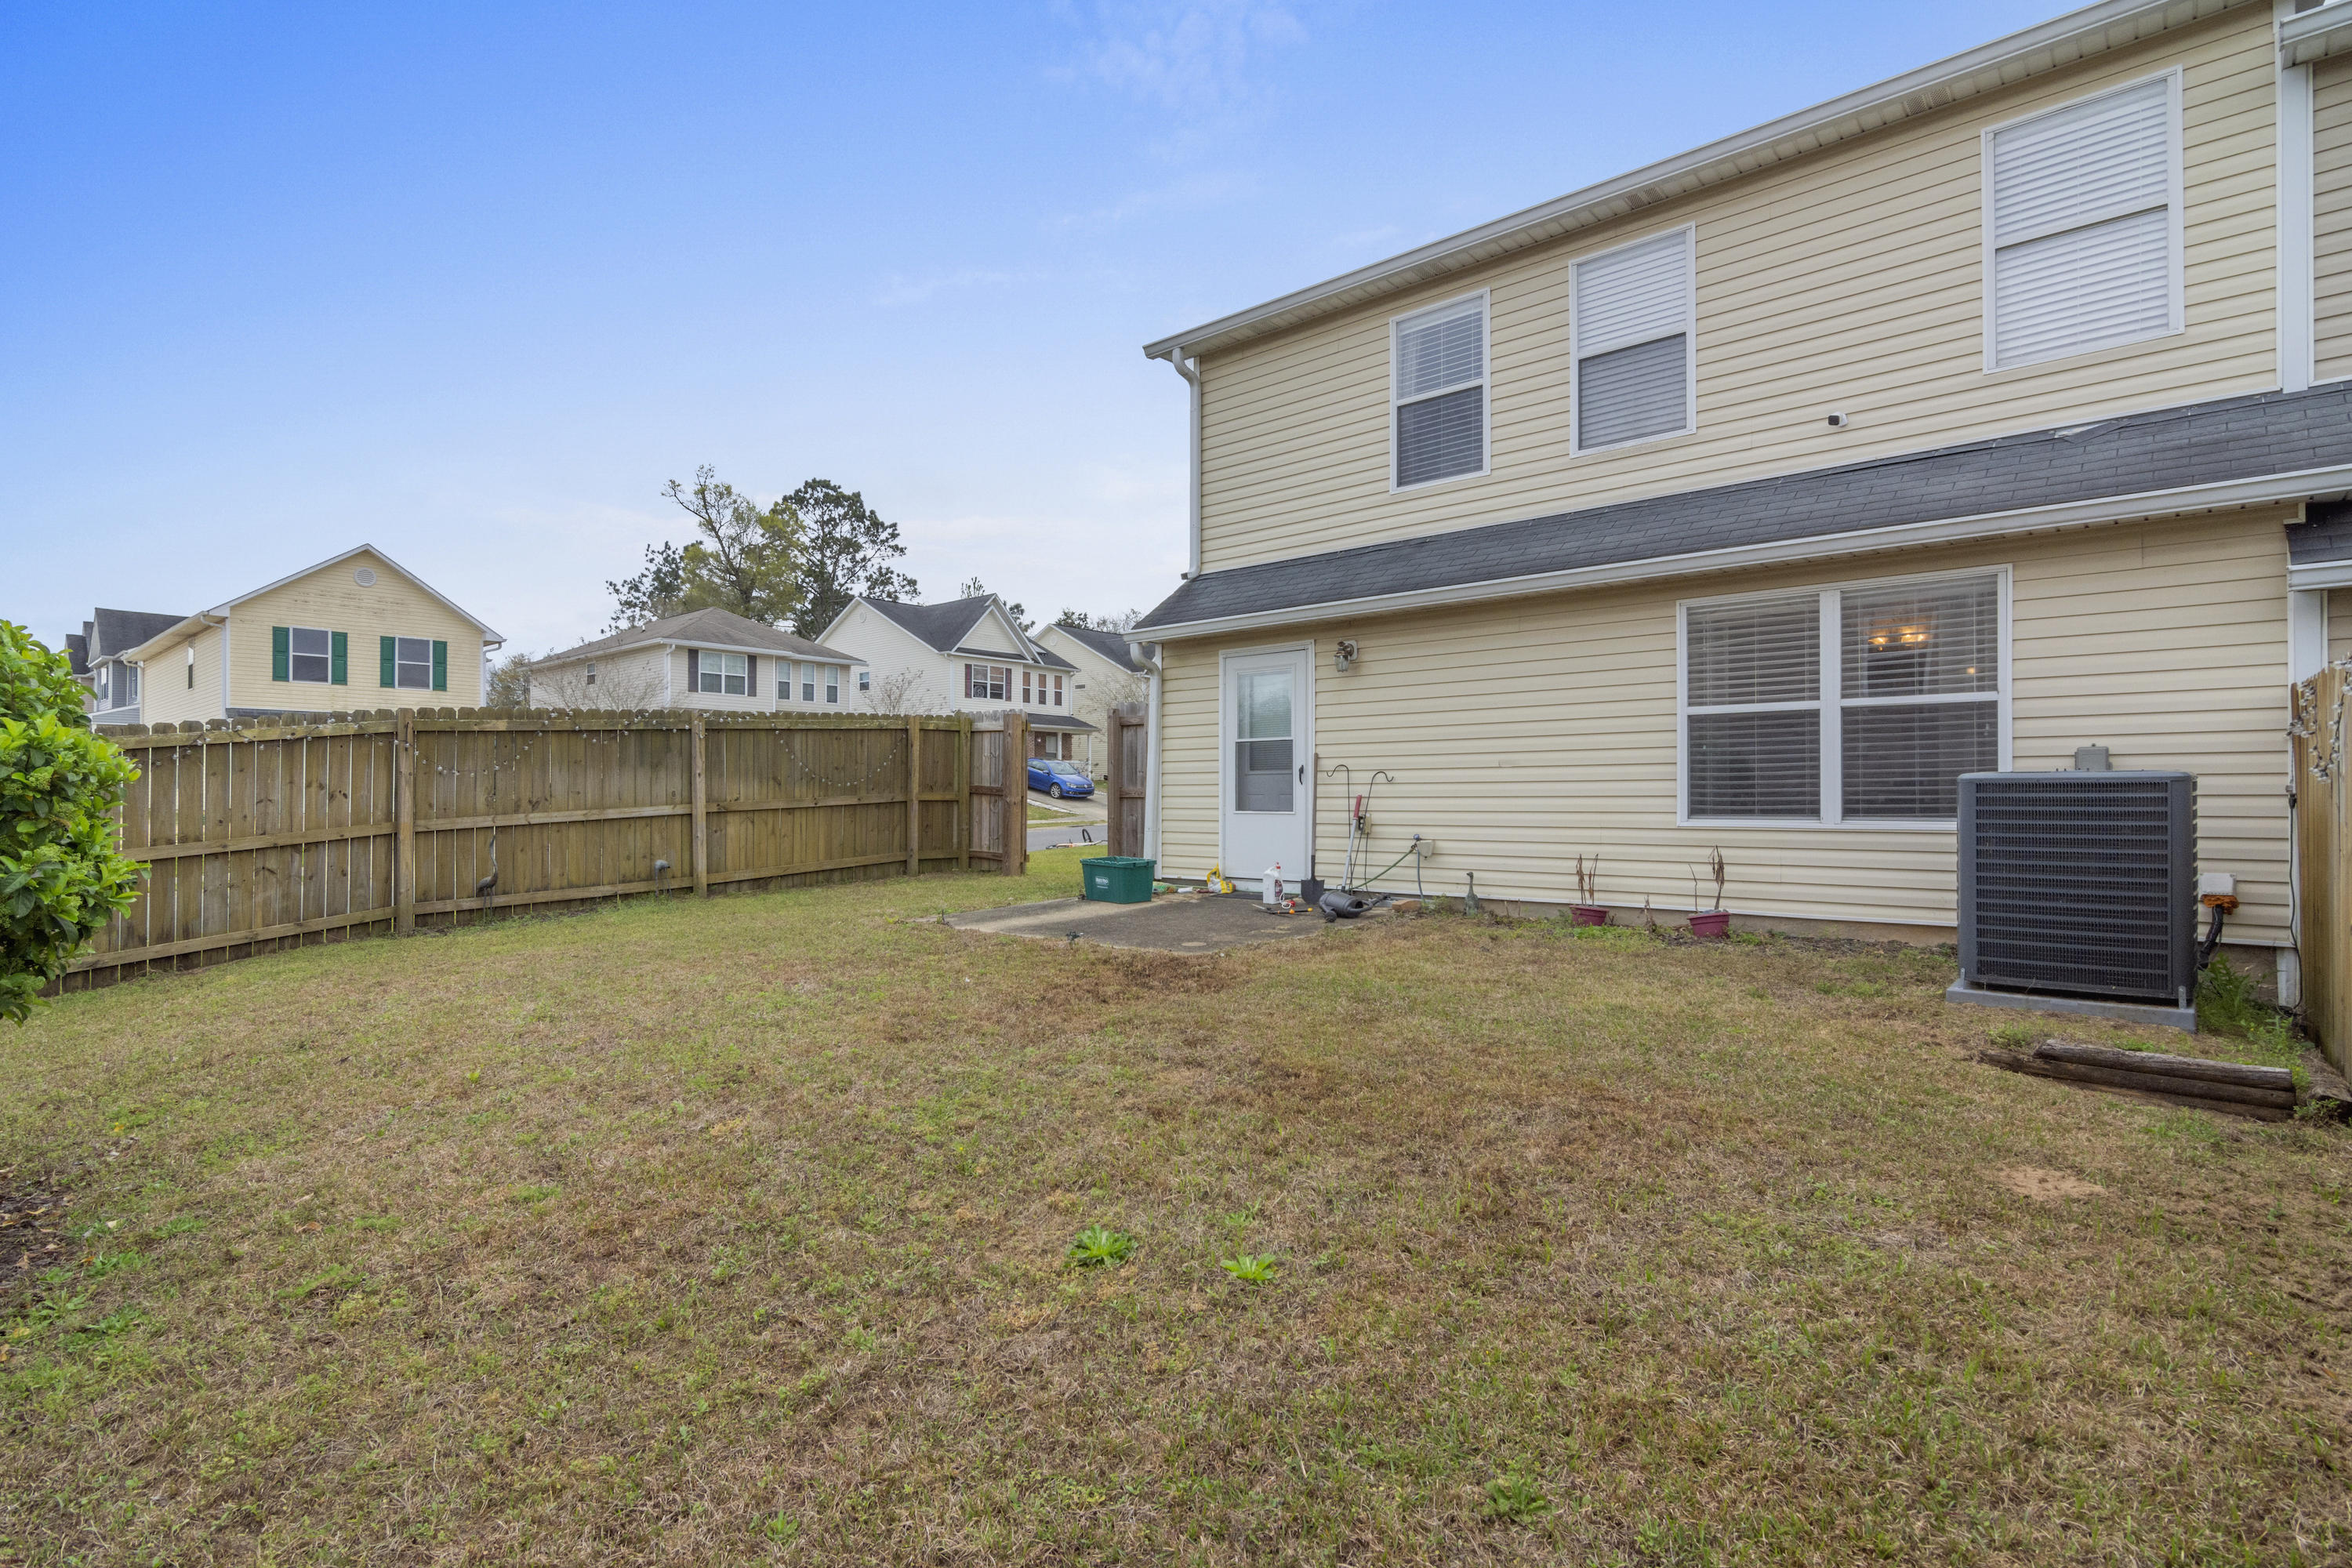 Photo of home for sale at 108 Mcnair, Crestview FL